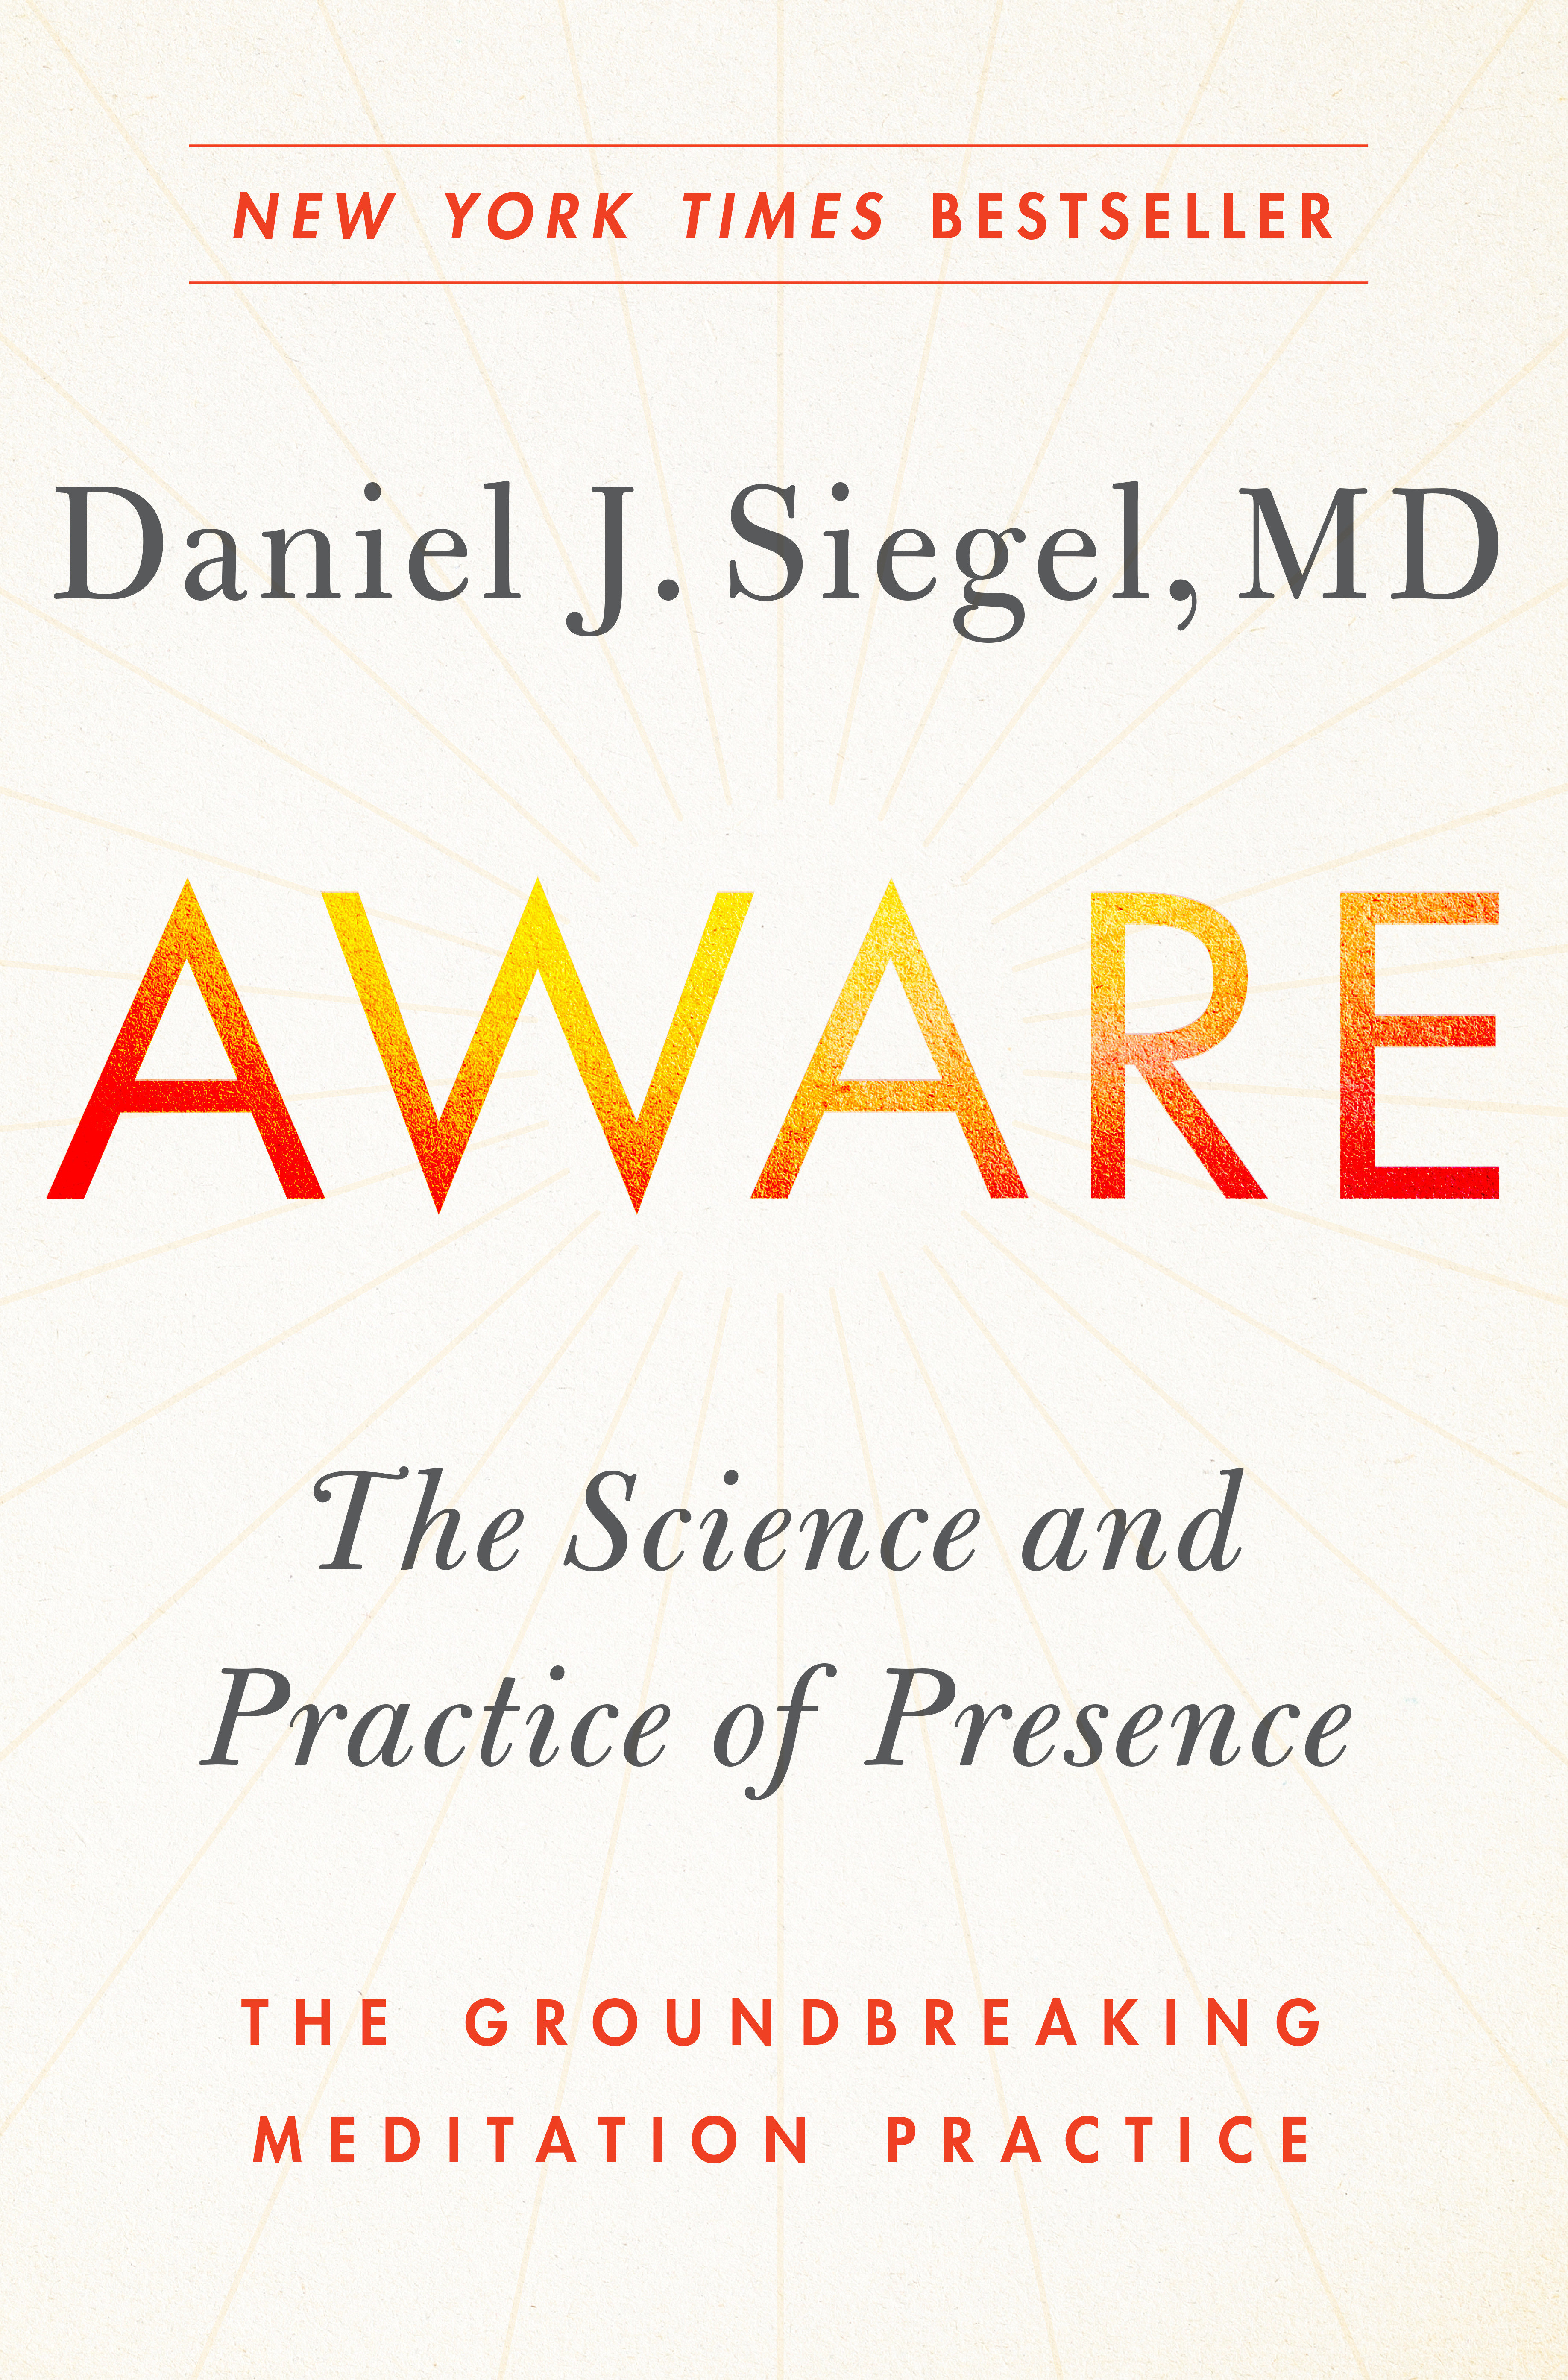 Aware The Science and Practice of Presence--The Groundbreaking Meditation Practice